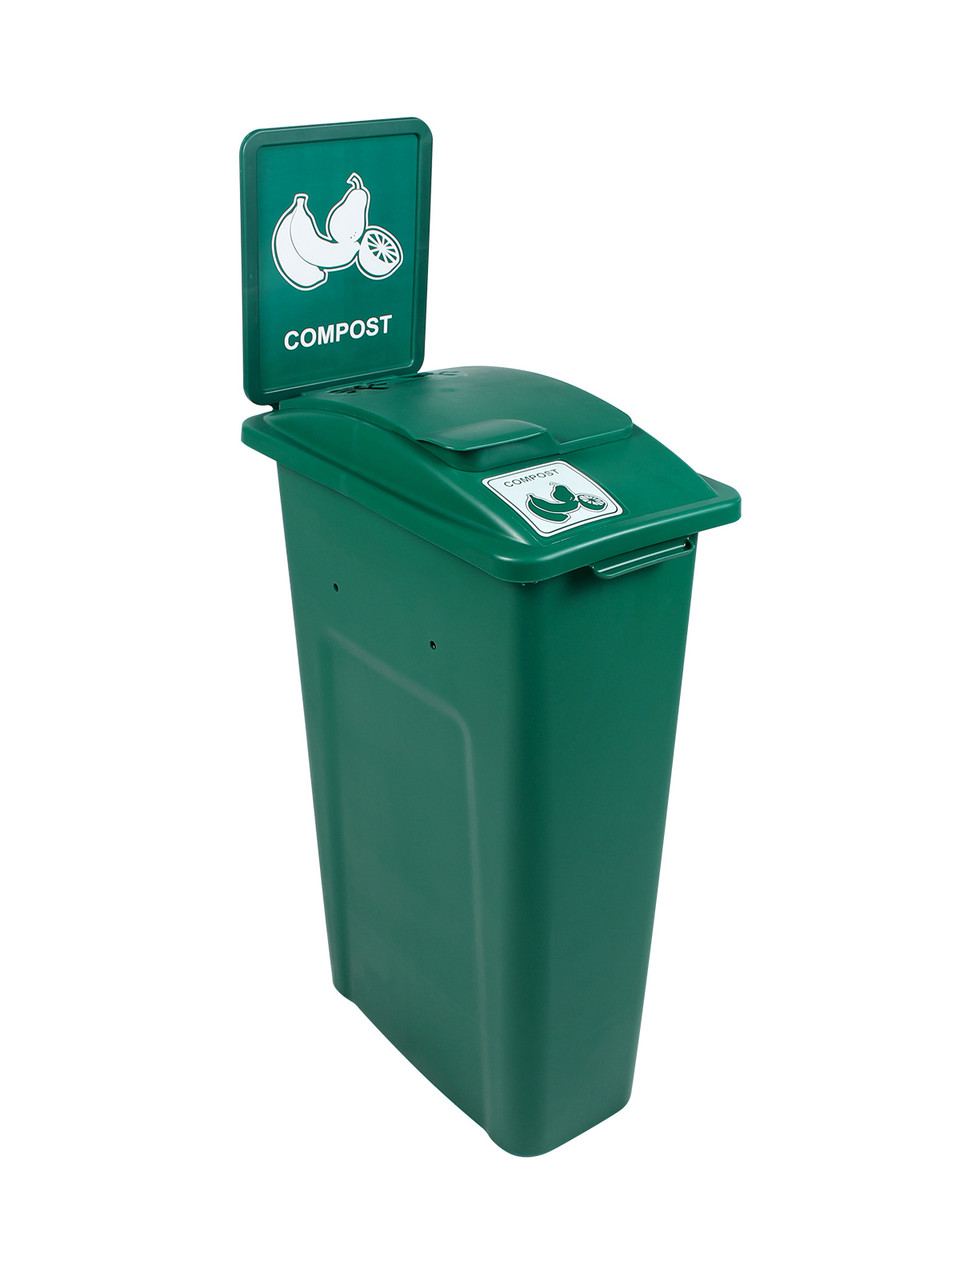 23 Gallon Skinny Simple Sort Compost Bin with Sign (Compost, Lift Top)